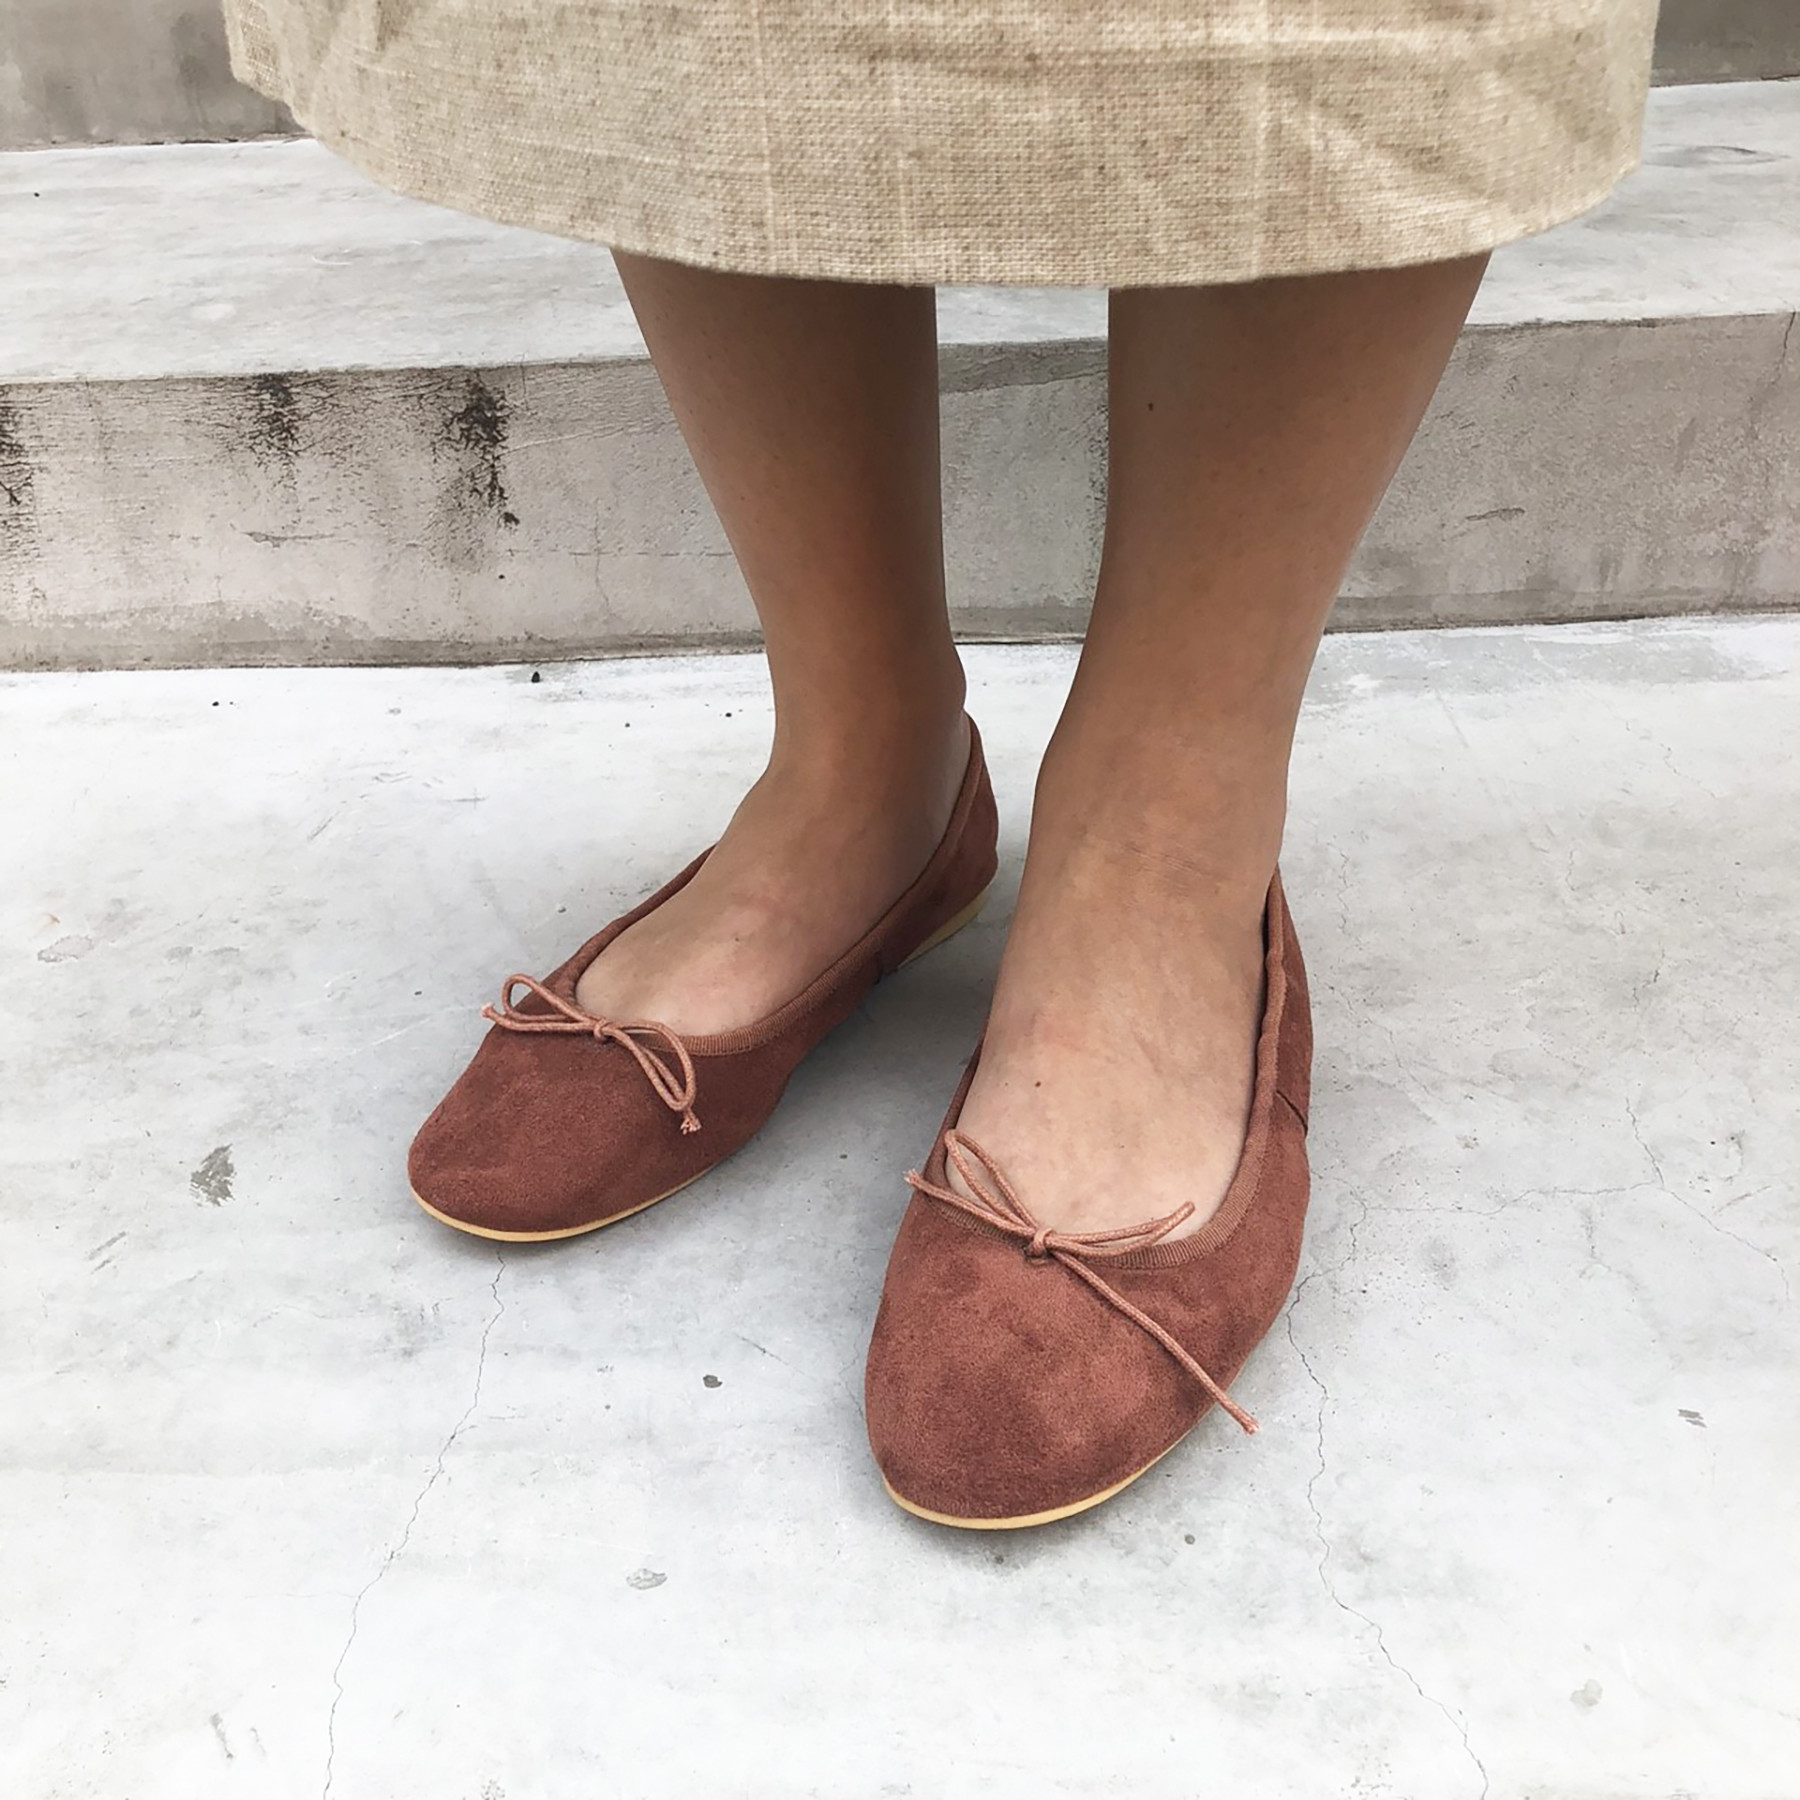 Round Ballet Shoes